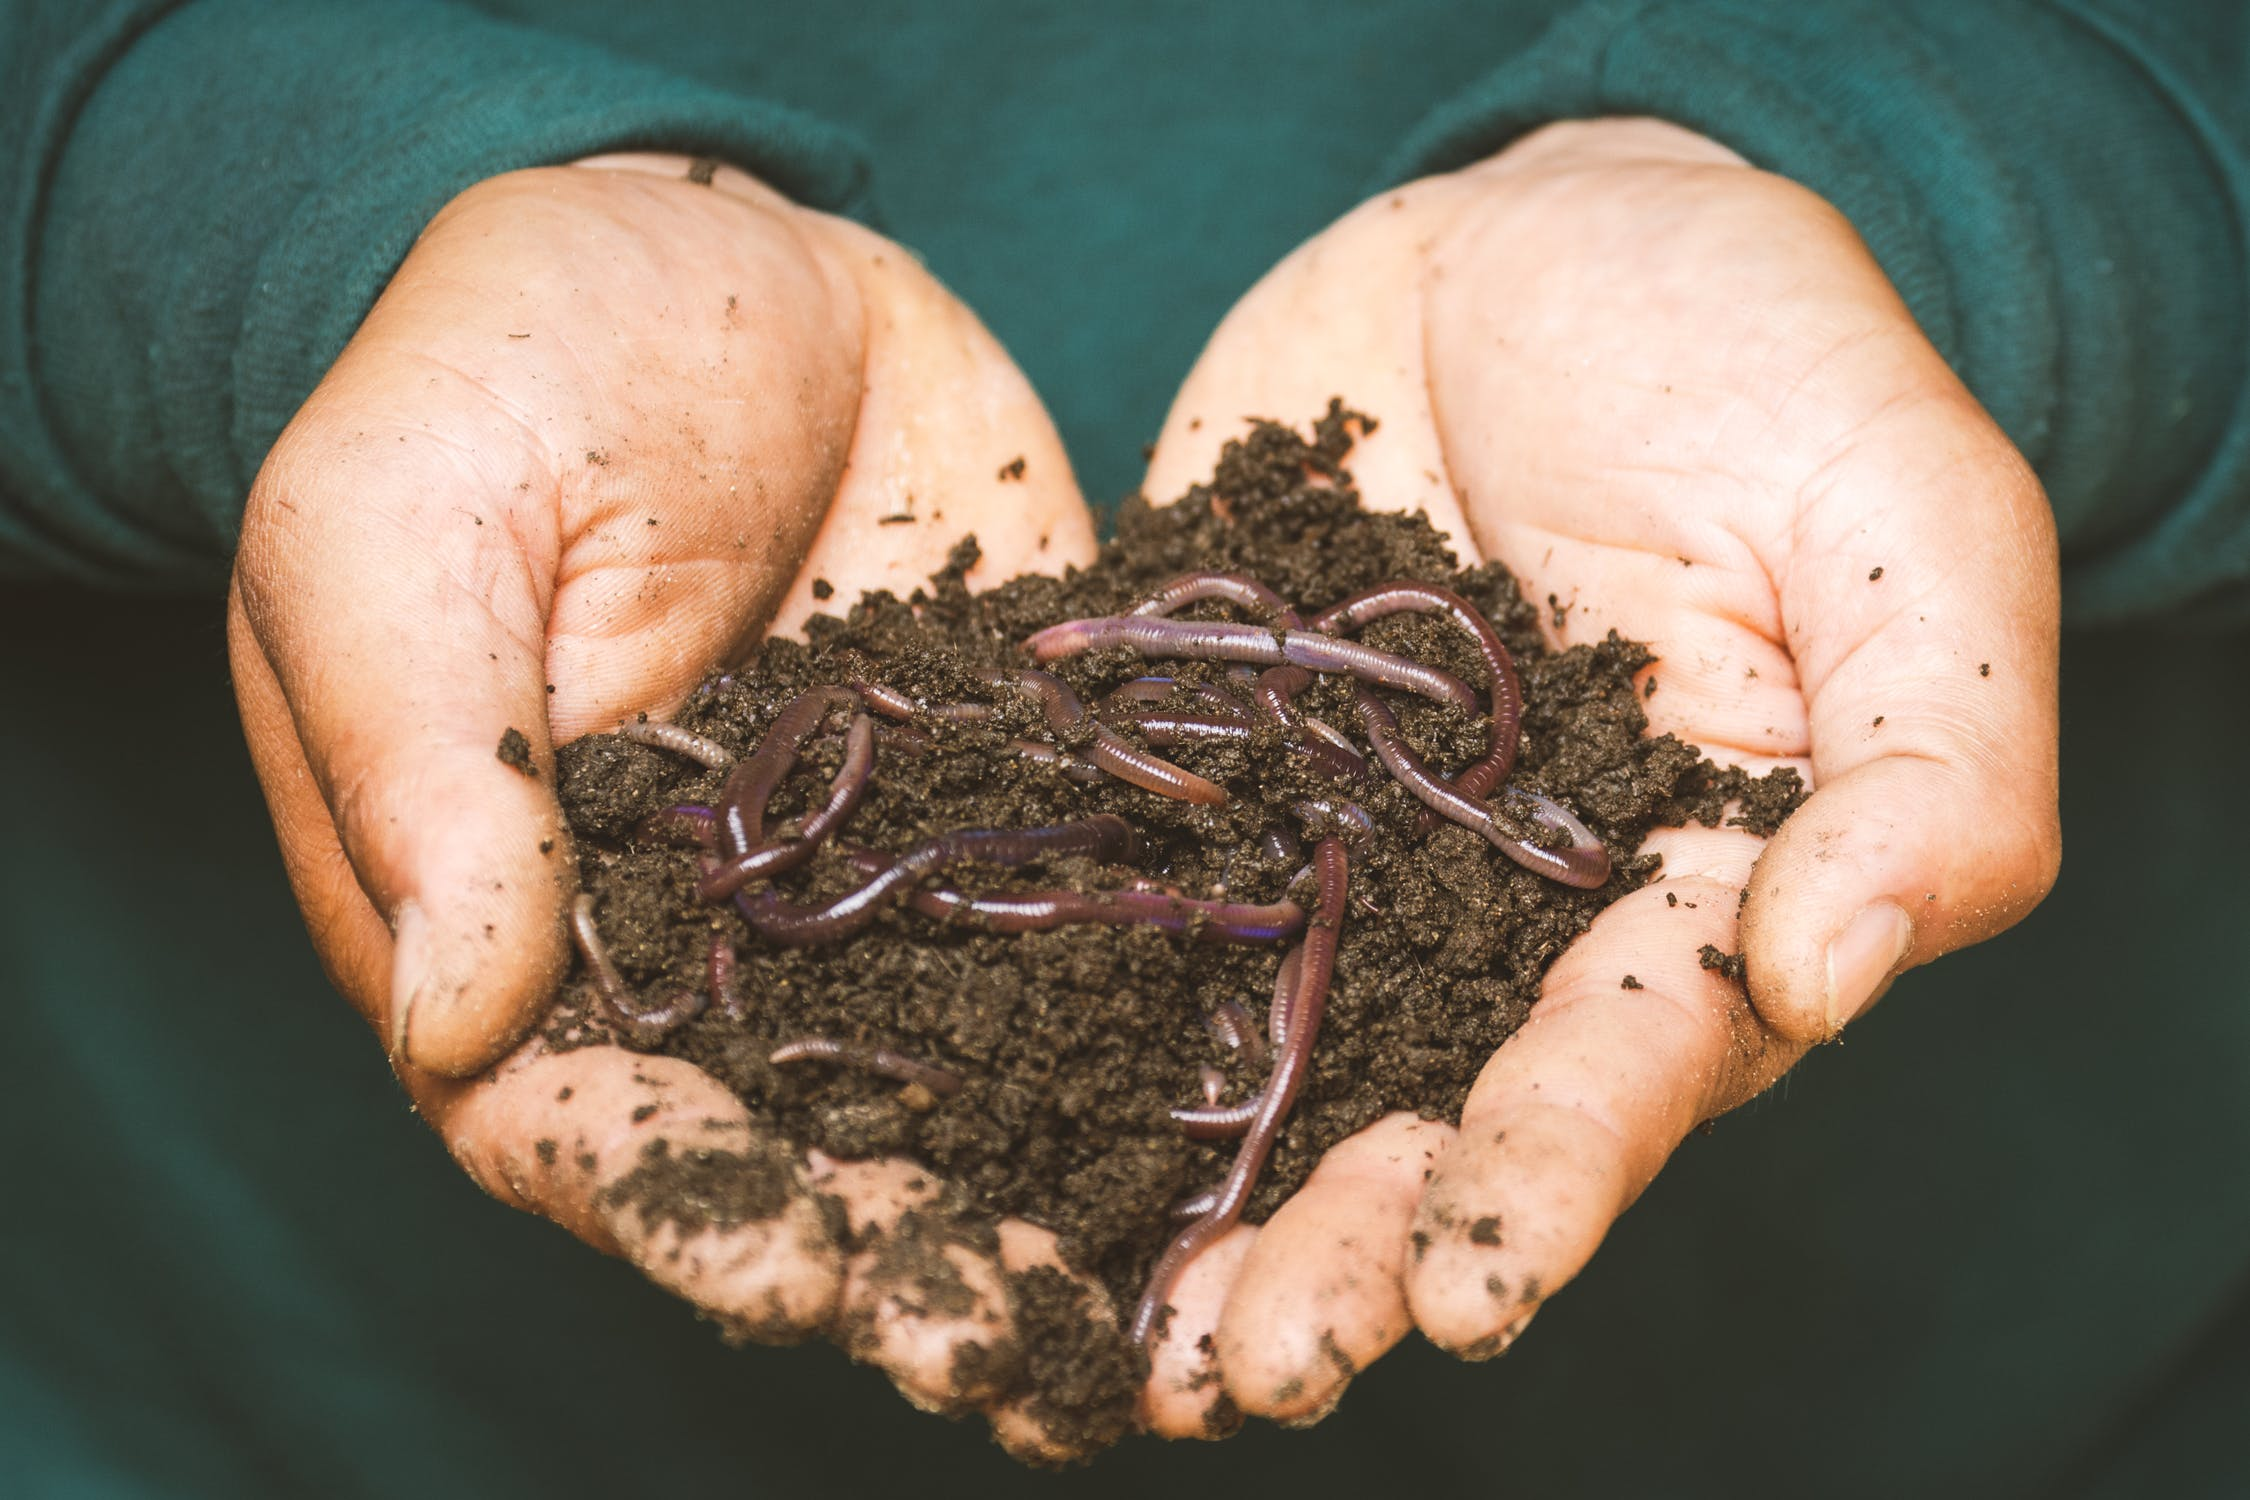 Hand holding worms in dirt